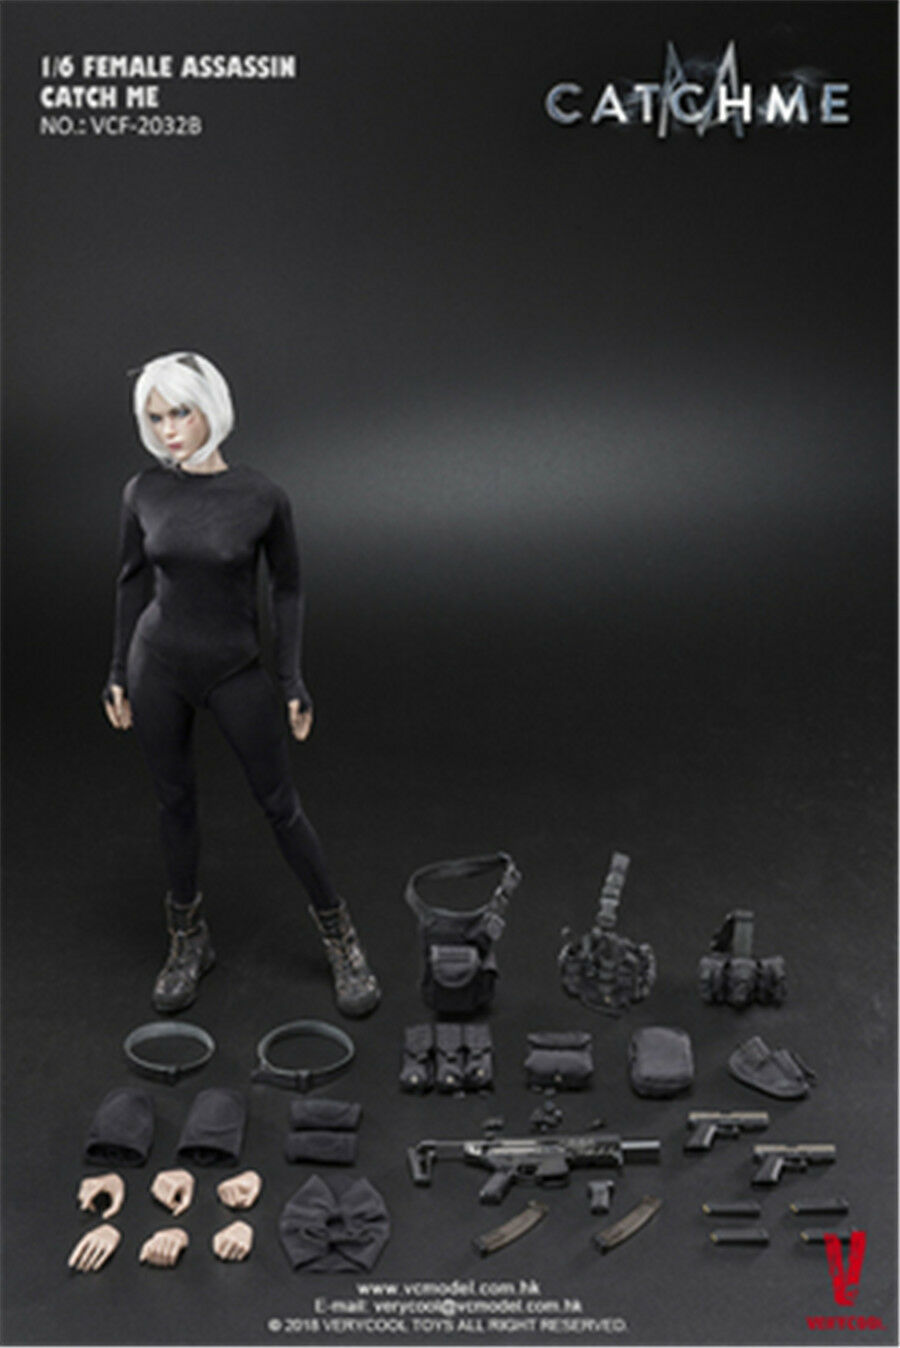 VERYCOOL VCF-2033 VCF-2033 VCF-2033 1/6 Female Assassin Series First Bomb Catch Me HOT FIGURE TOYS cd8323